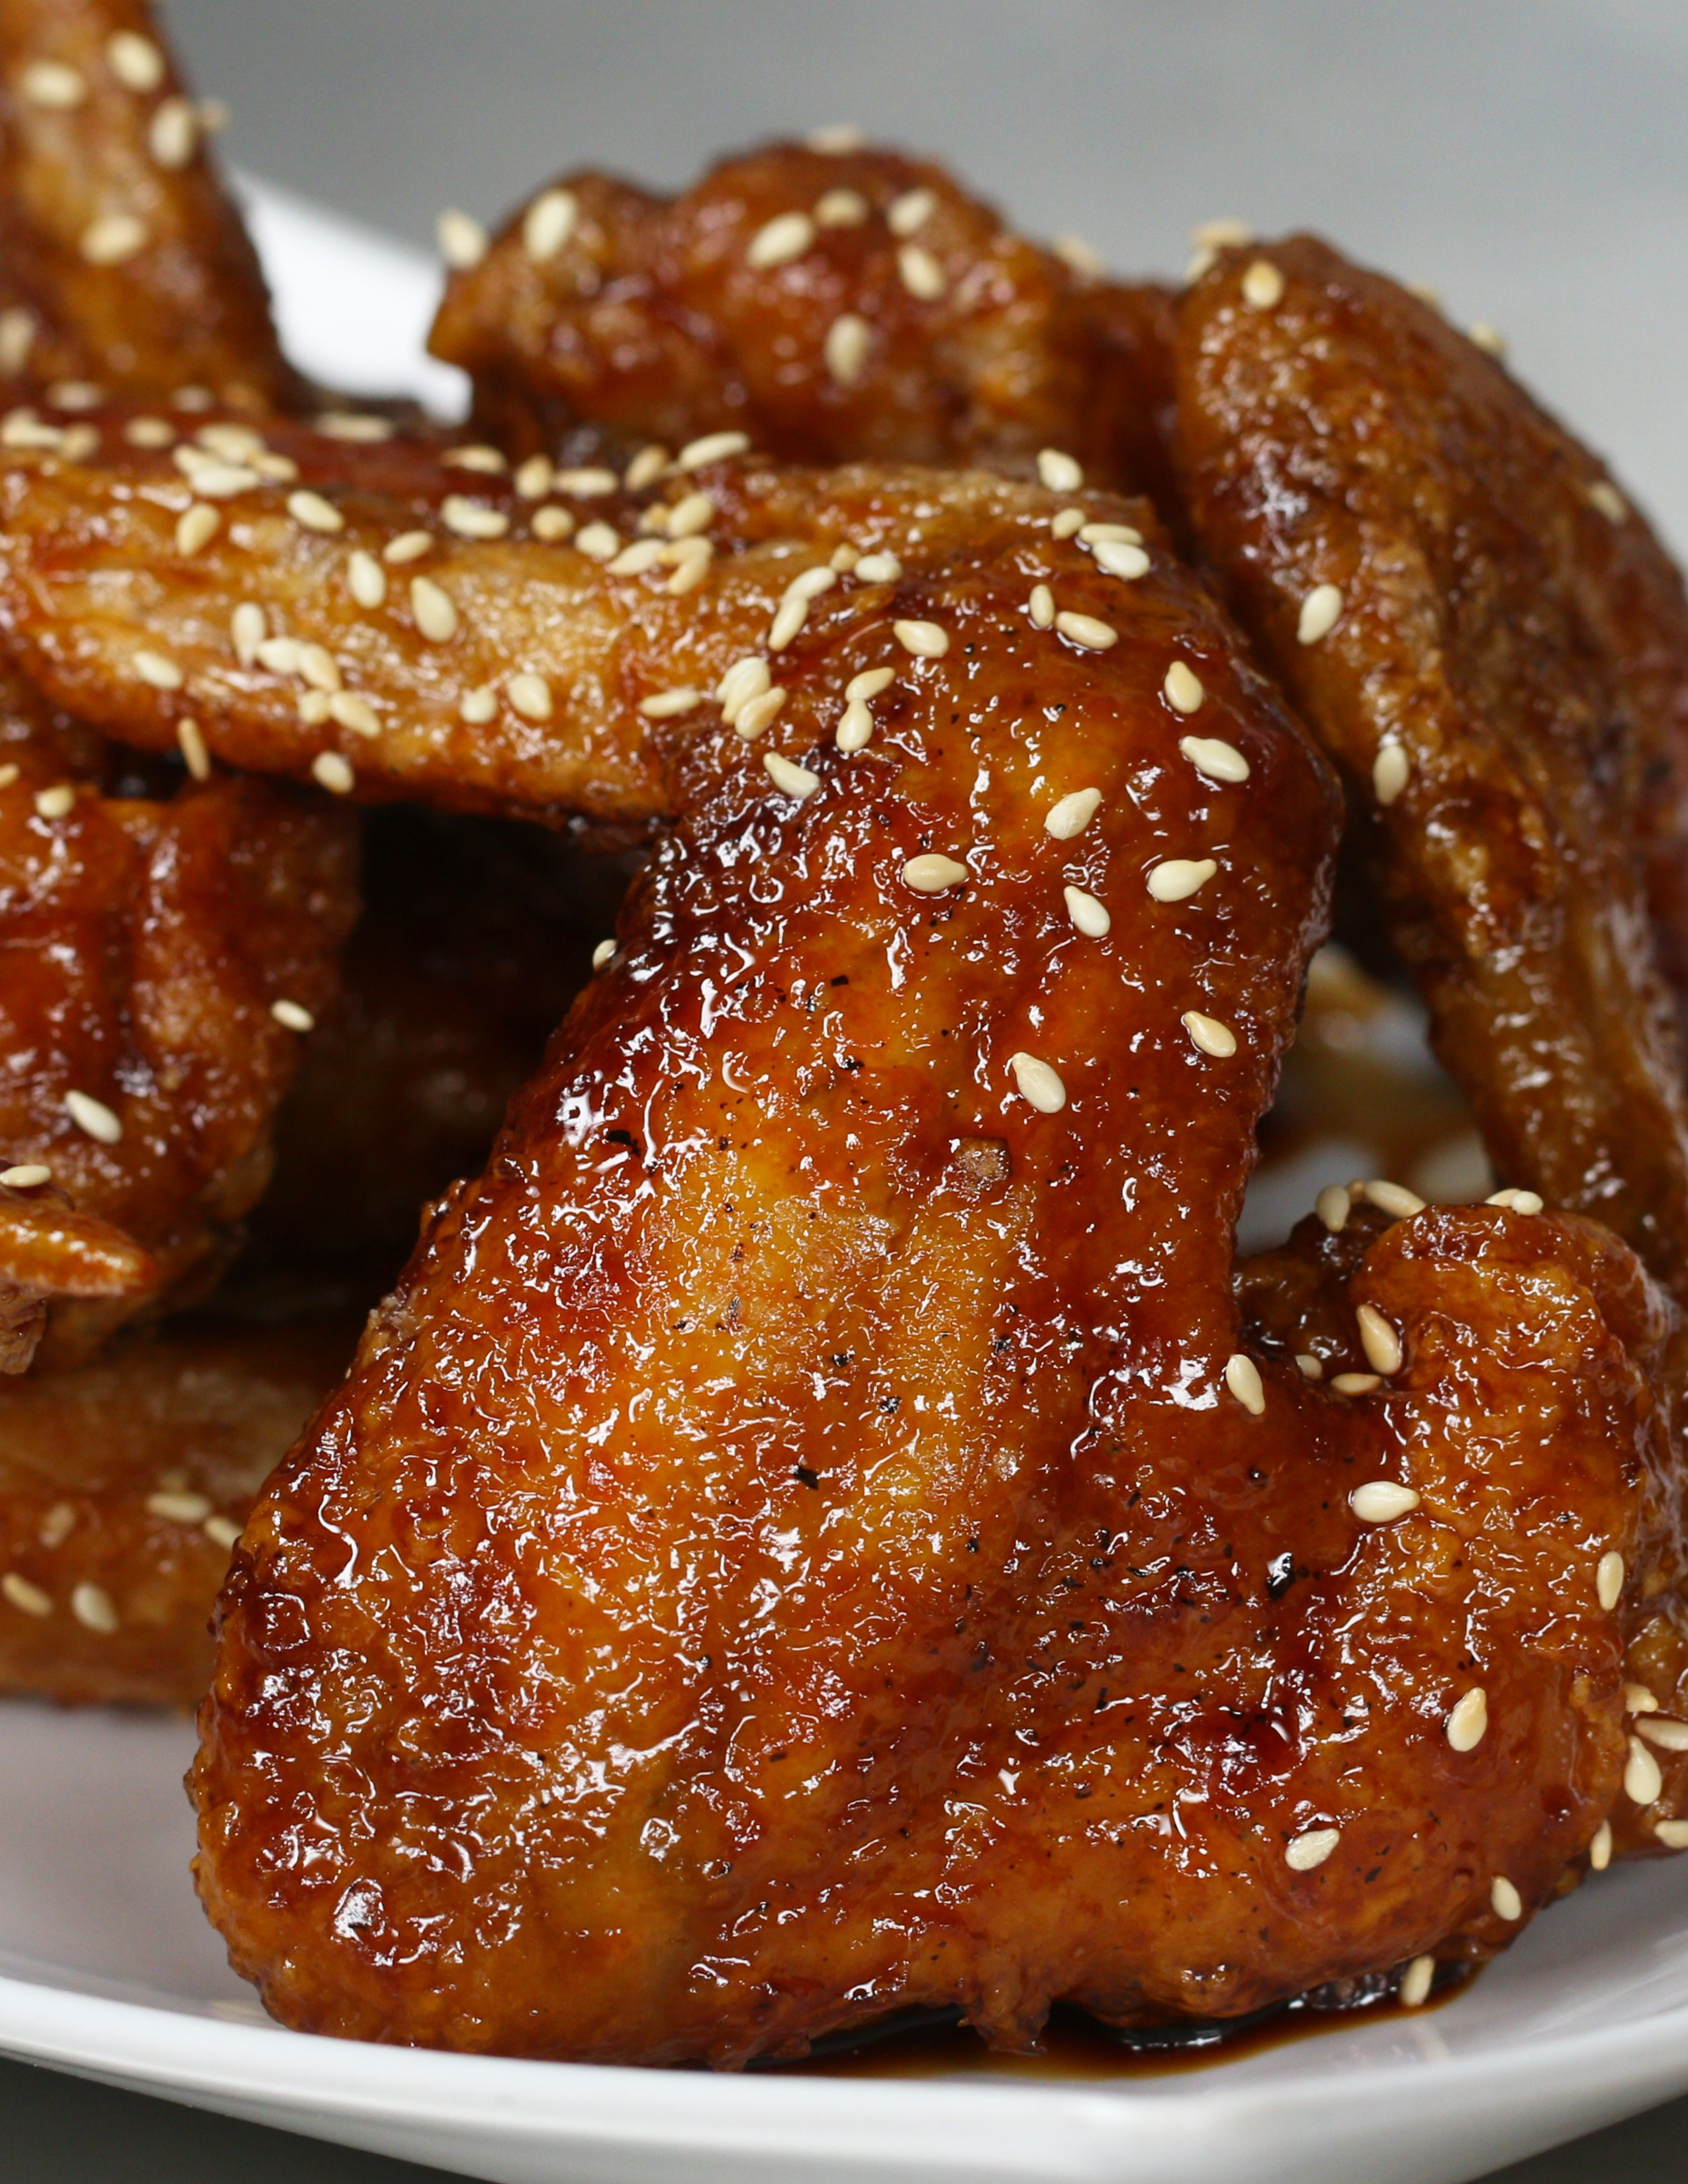 Tasty cook off fried chicken tasty foods and recipes tasty cook off fried chicken of buzzfeed 8 chicken wingssalt to tastepepper to tastepotato starch to dredgefrying oil as neededsweet soy glaze cup forumfinder Images